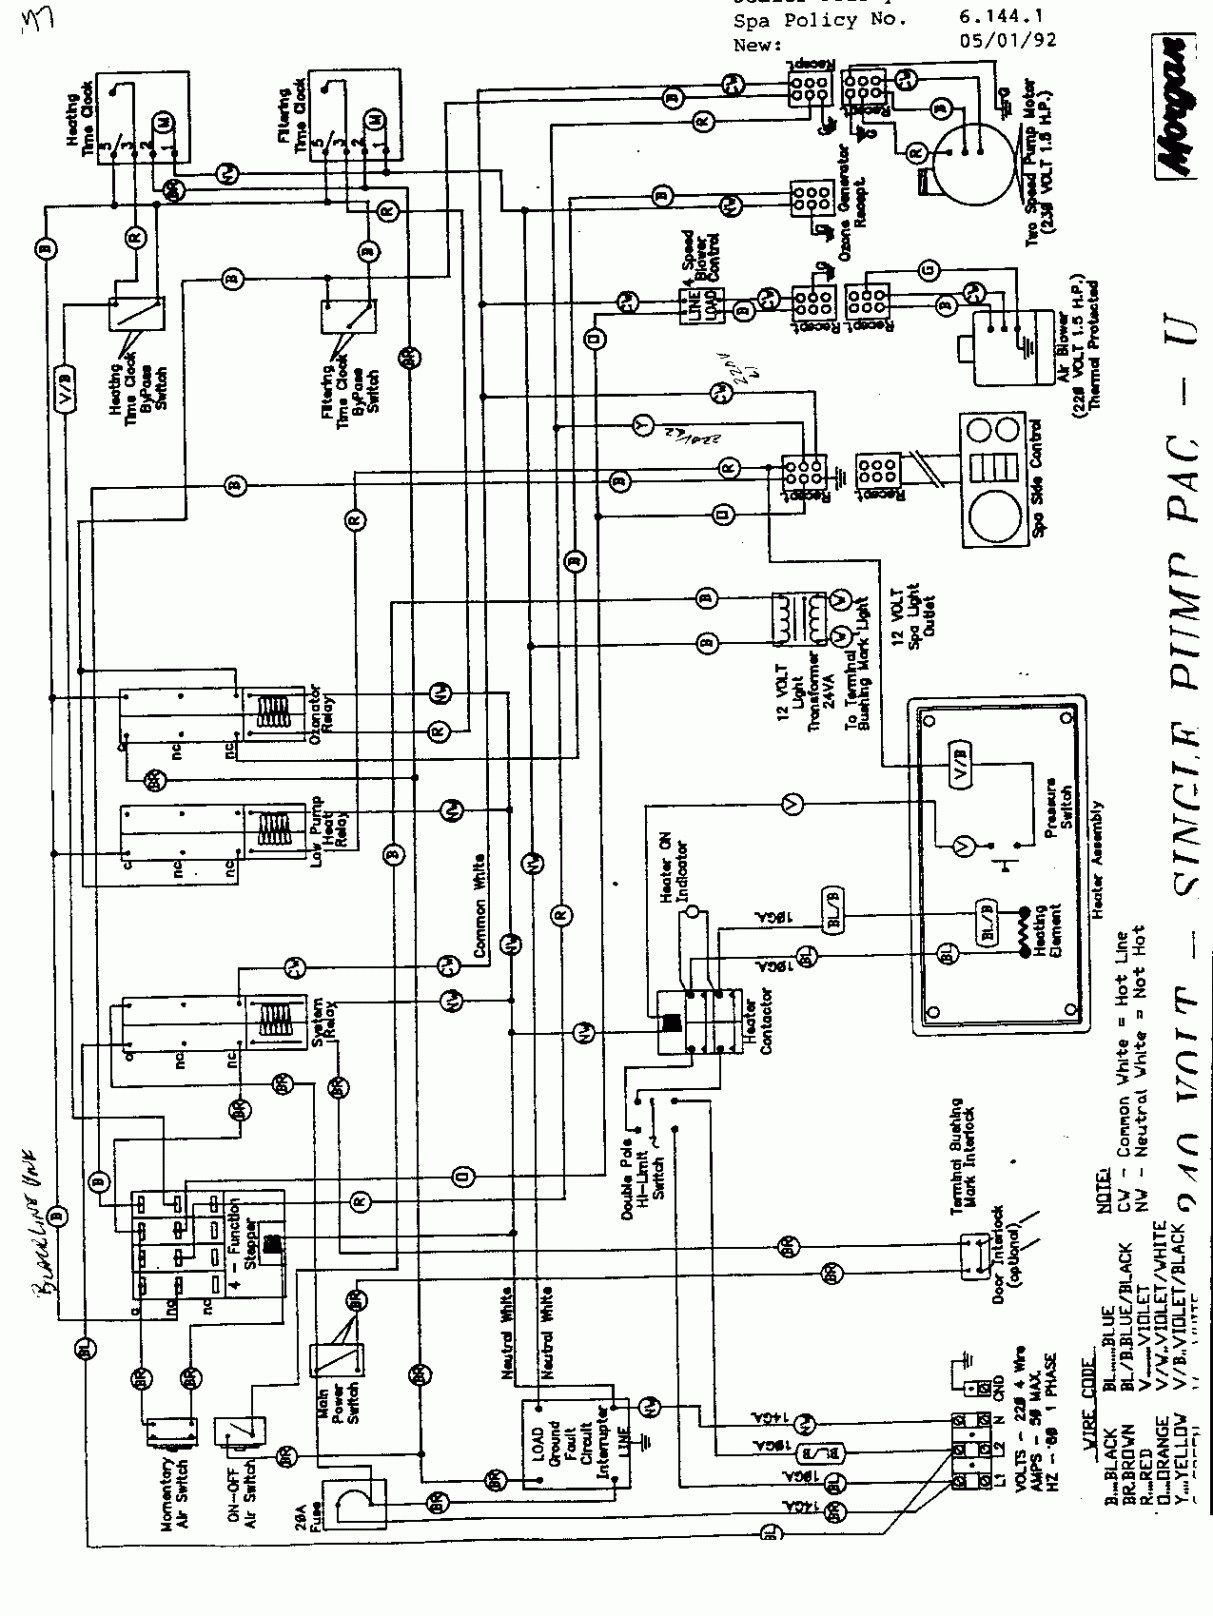 Acura Spa Wiring Diagram